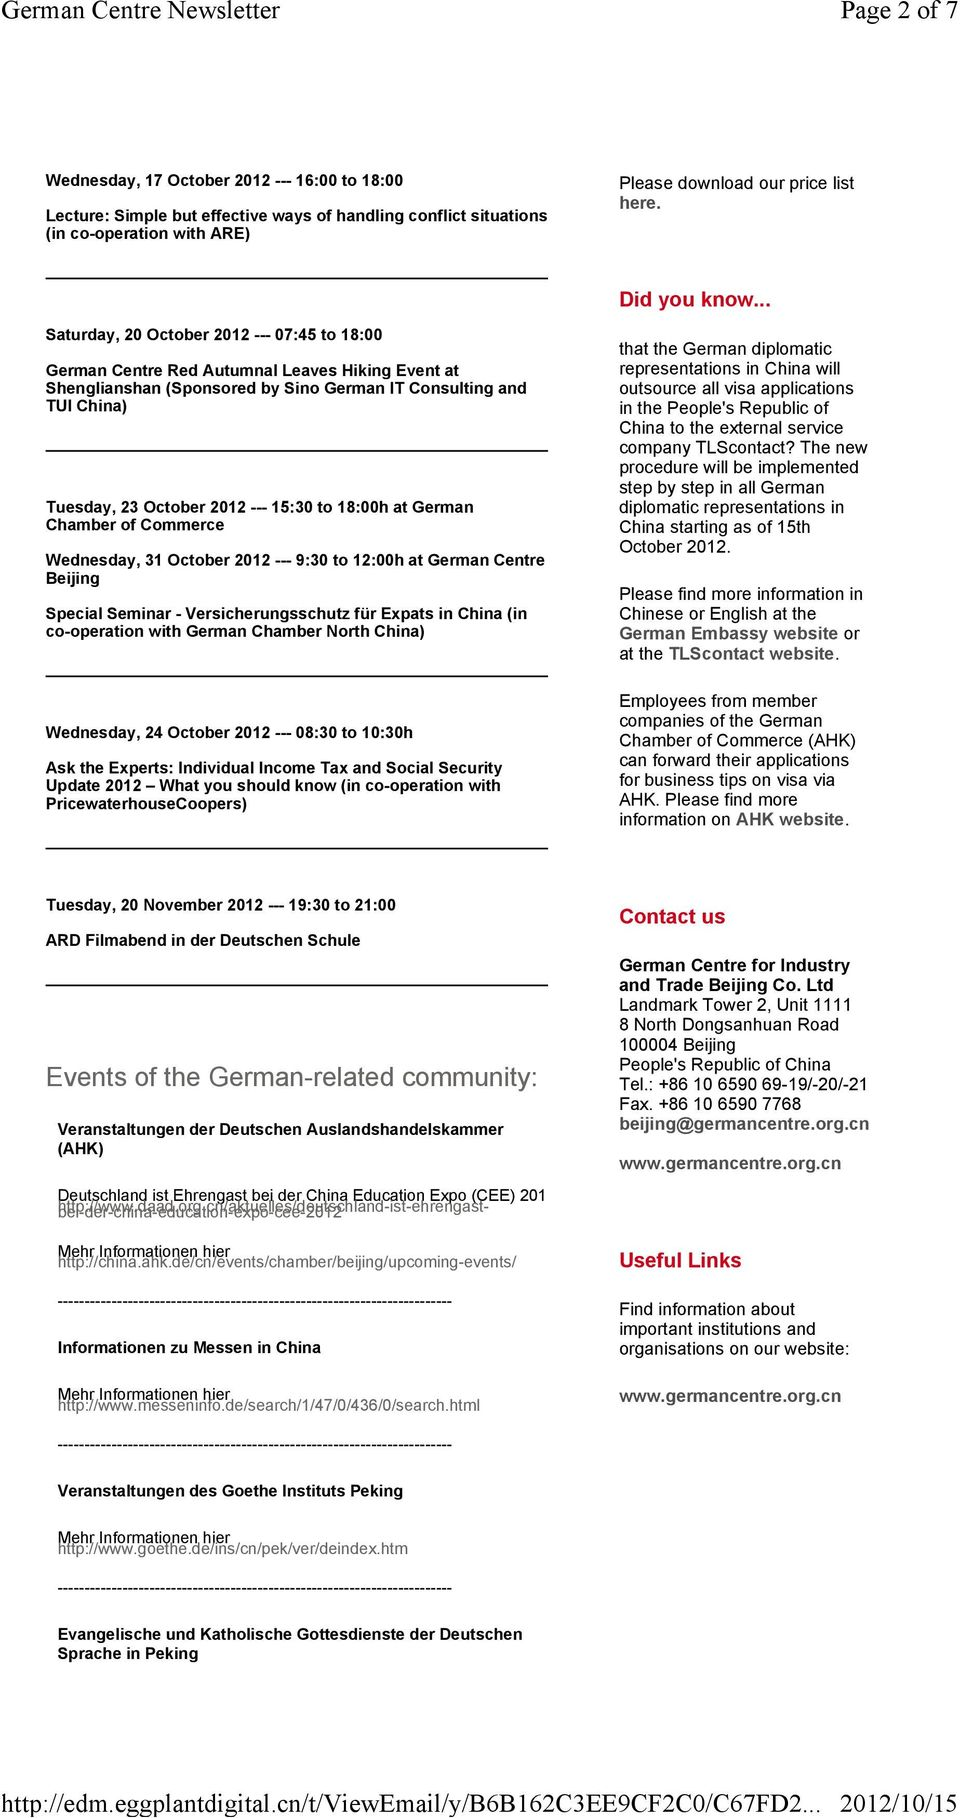 .. Saturday, 20 October 2012 --- 07:45 to 18:00 German Centre Red Autumnal Leaves Hiking Event at Shenglianshan (Sponsored by Sino German IT Consulting and TUI China) Tuesday, 23 October 2012 ---